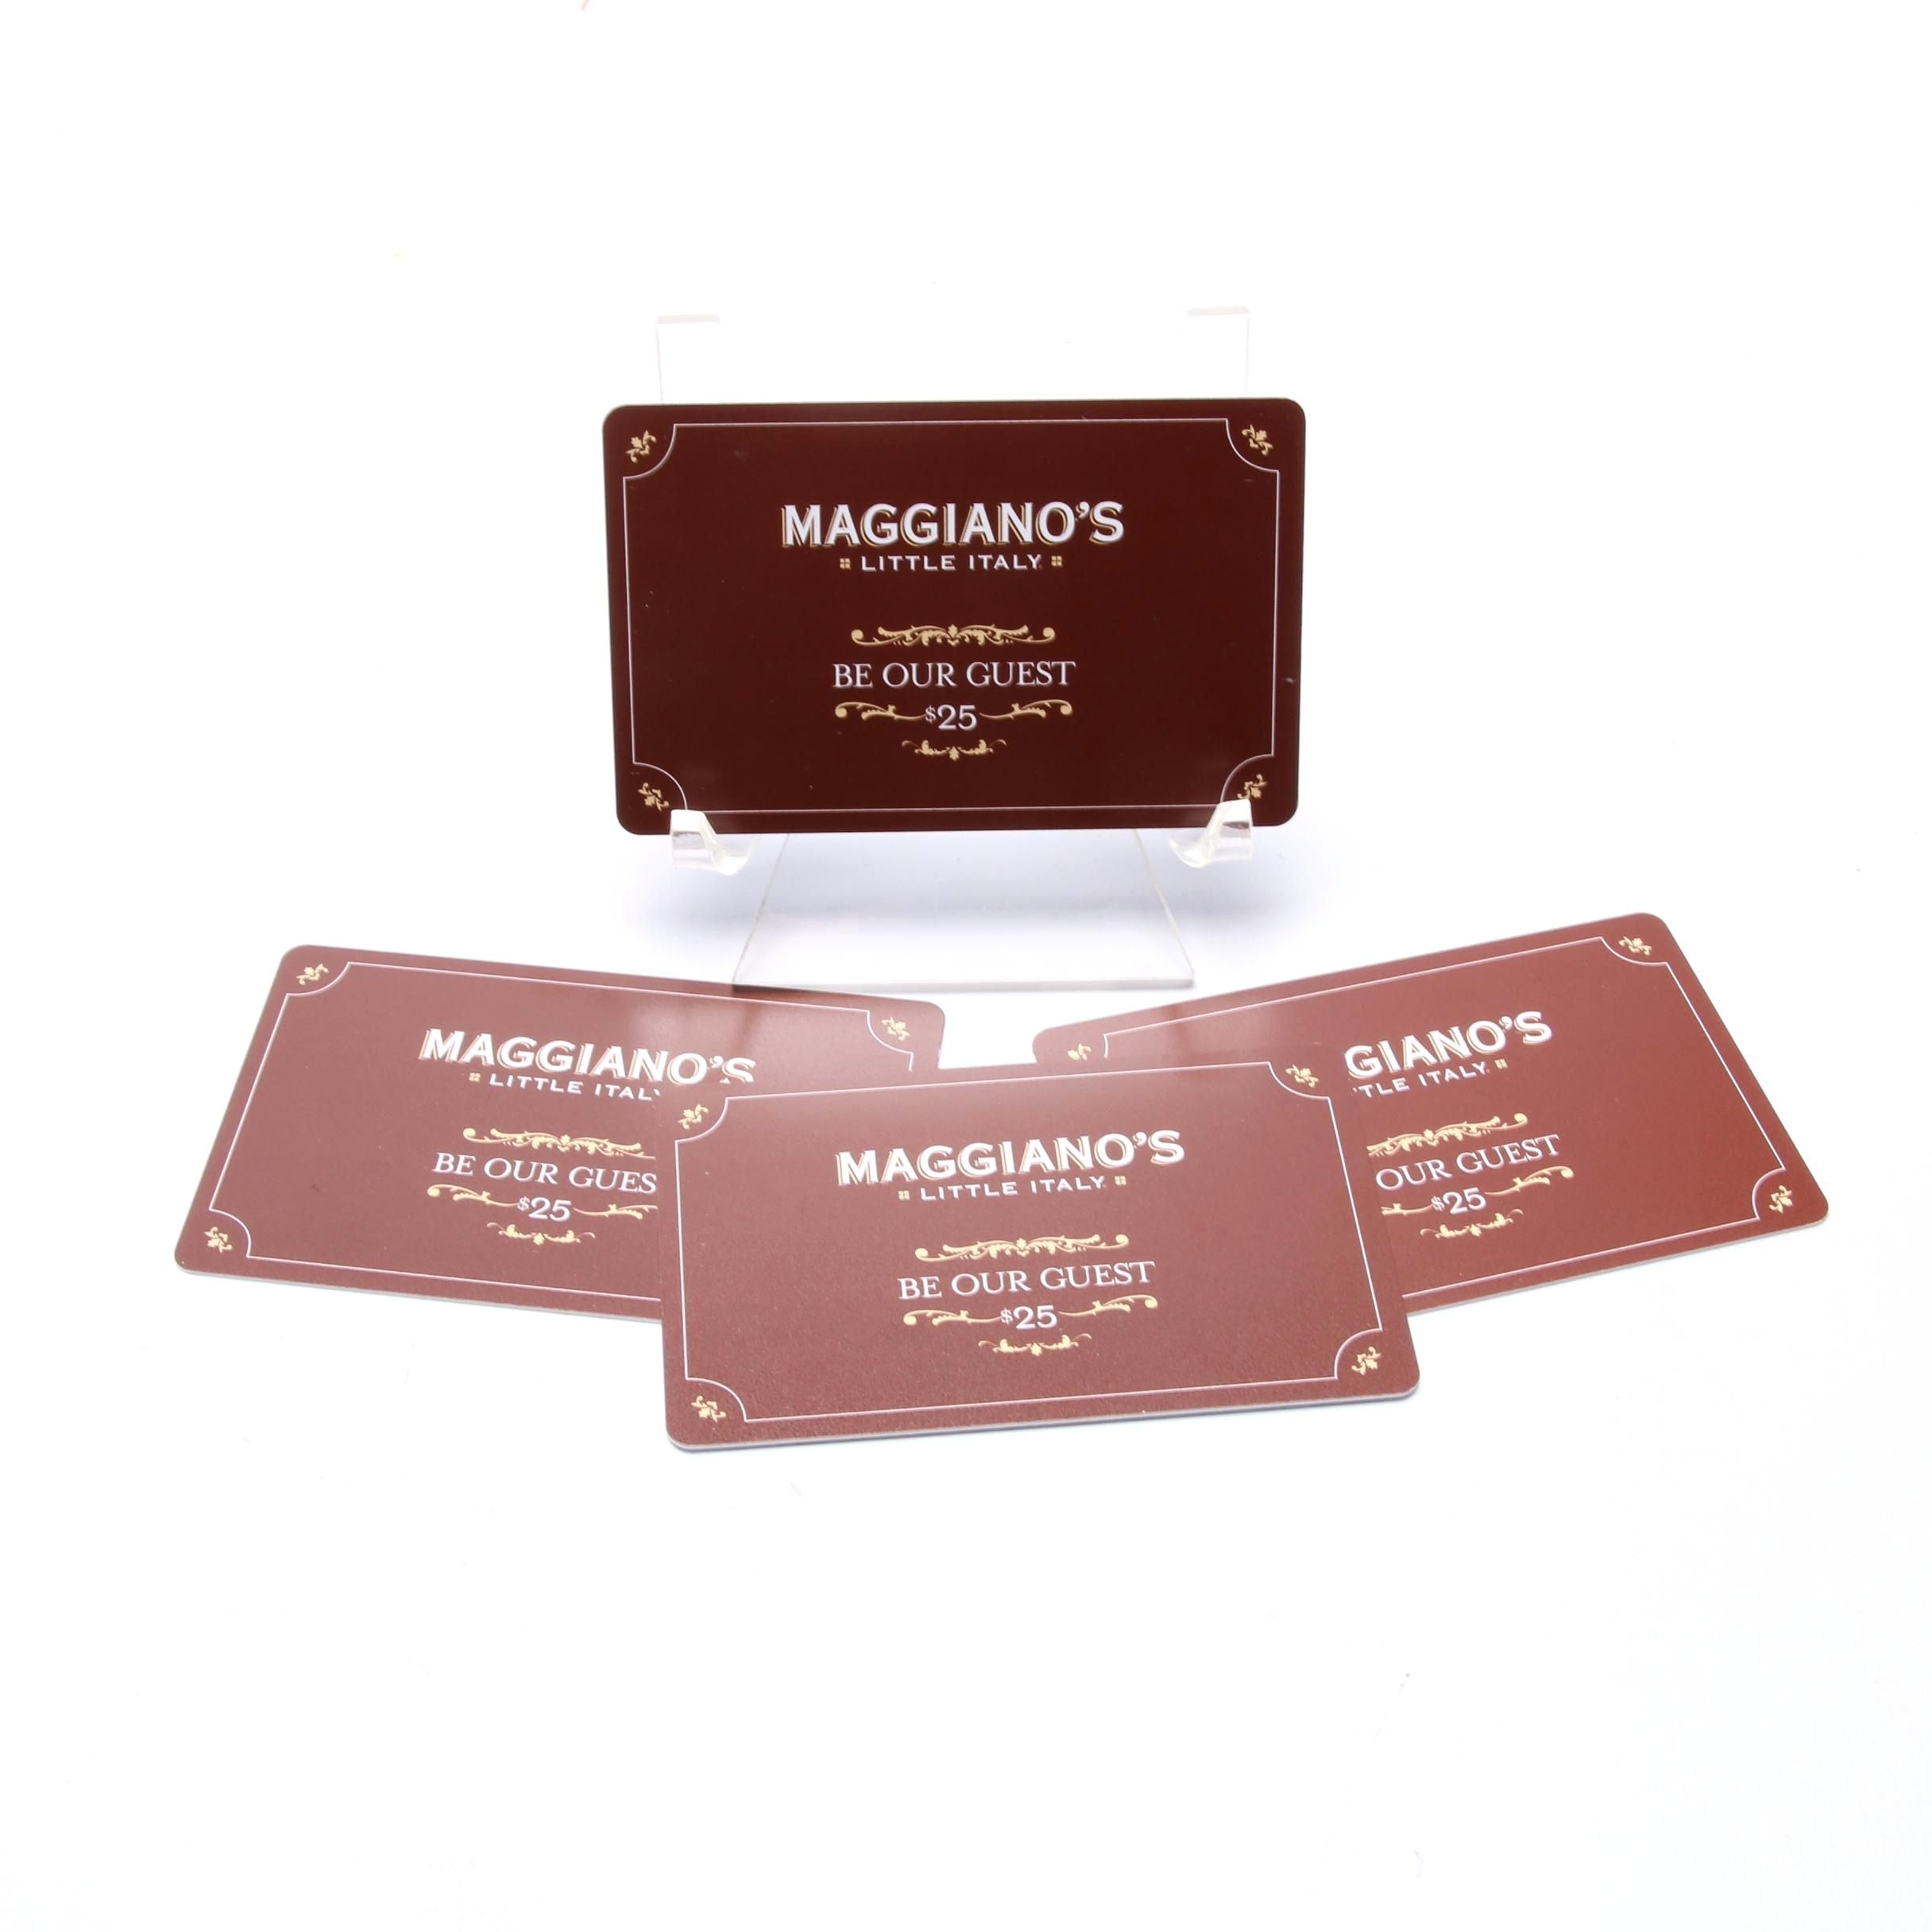 Four Maggiano's Little Italy Gift Cards